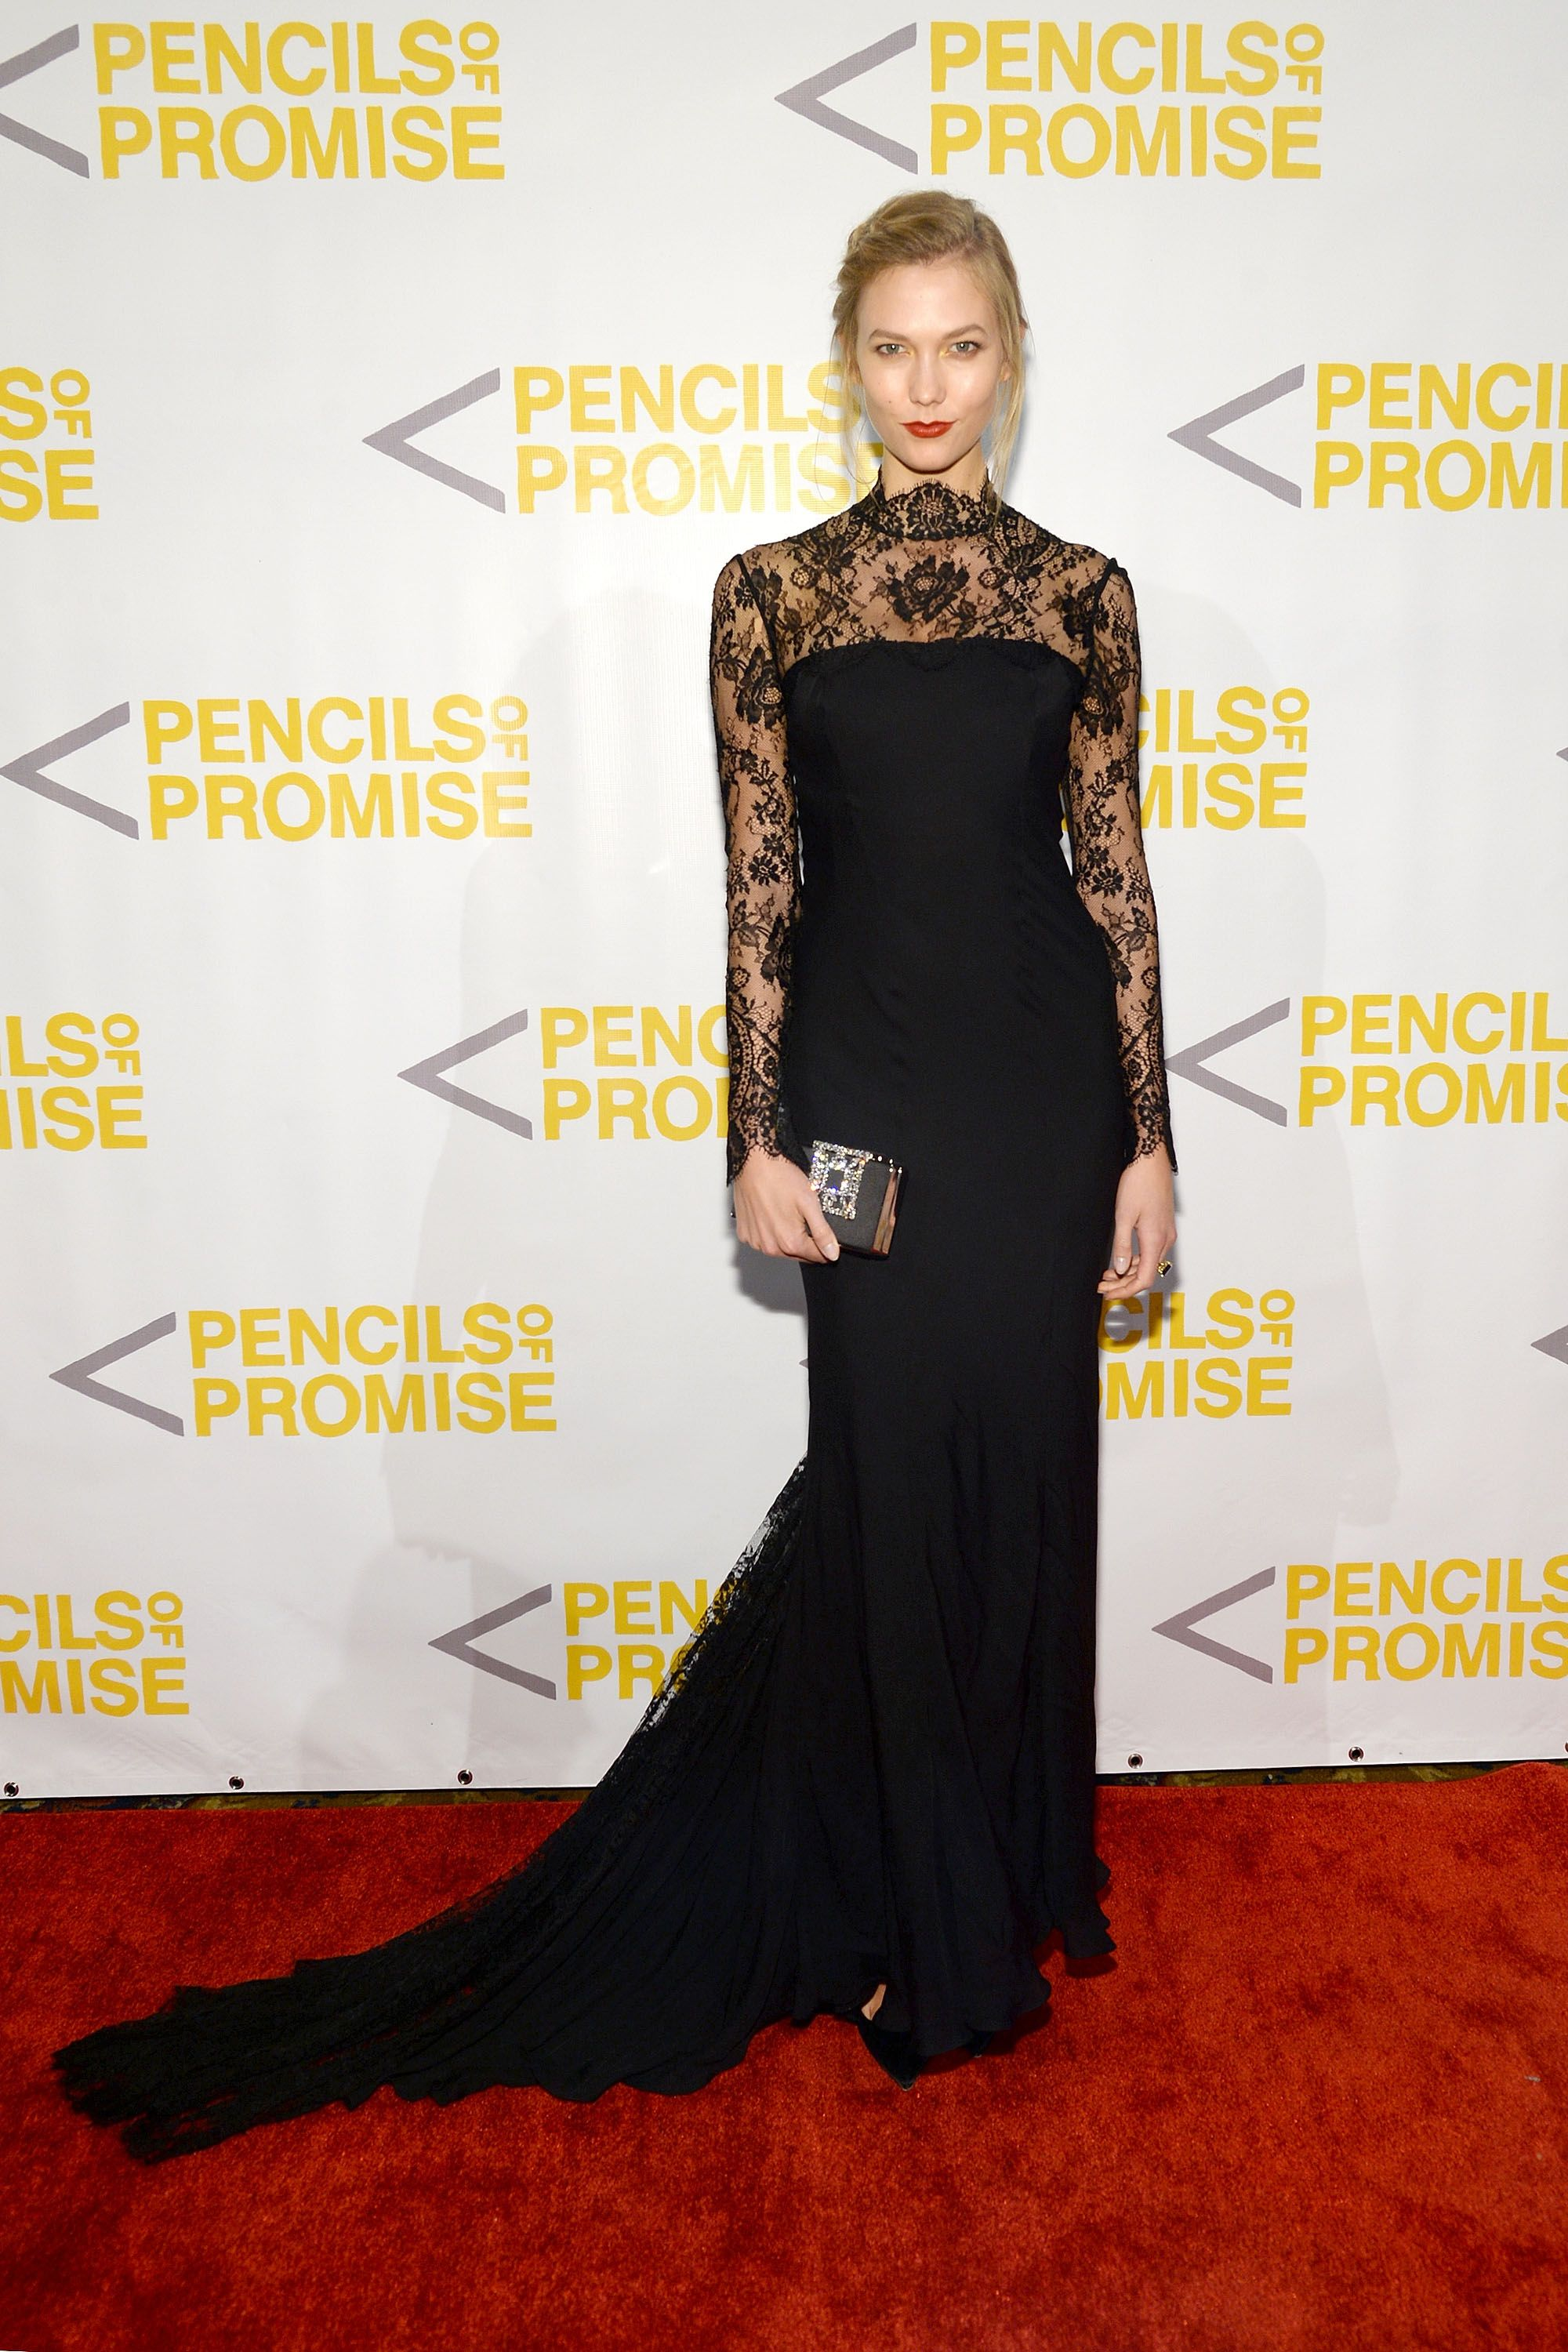 """<p>Who: Karlie Kloss</p><p>When: October 21, 2015</p><p>Why: There really isn't much Karlie Kloss can't wear given her 6'1"""" height, stunning face, and svelte frame, but sometimes she looks particularly <em>unreal</em>. In this dramatic lace gown by Dolce & Gabbana, this is one of those times. </p>"""